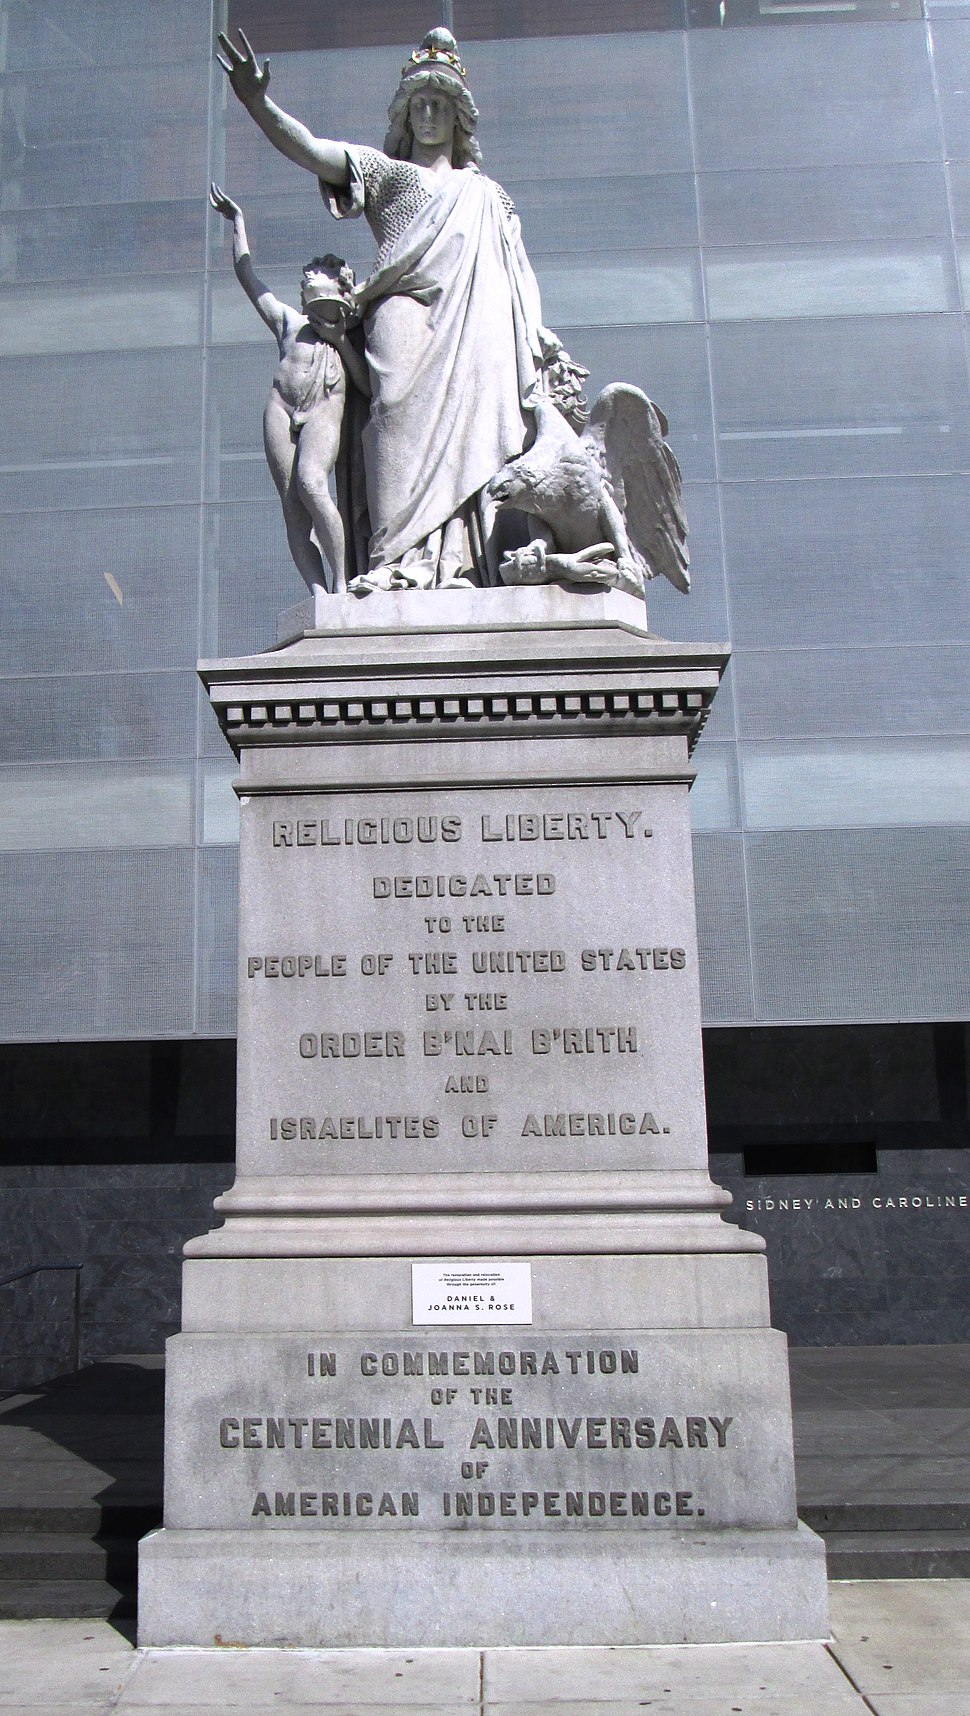 Religious Liberty by Jacob Moses Ezekiel